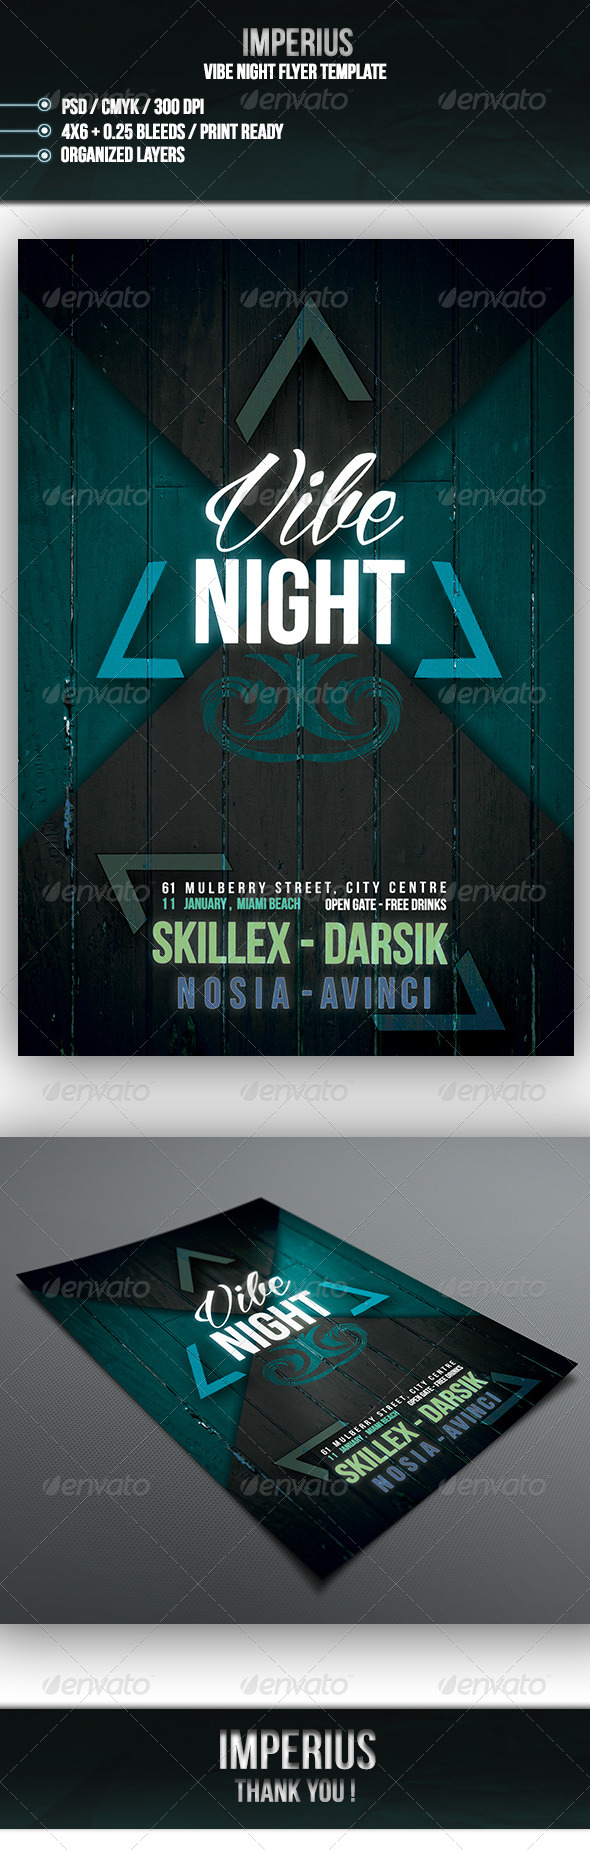 GraphicRiver Vibe Night Flyer 7132512